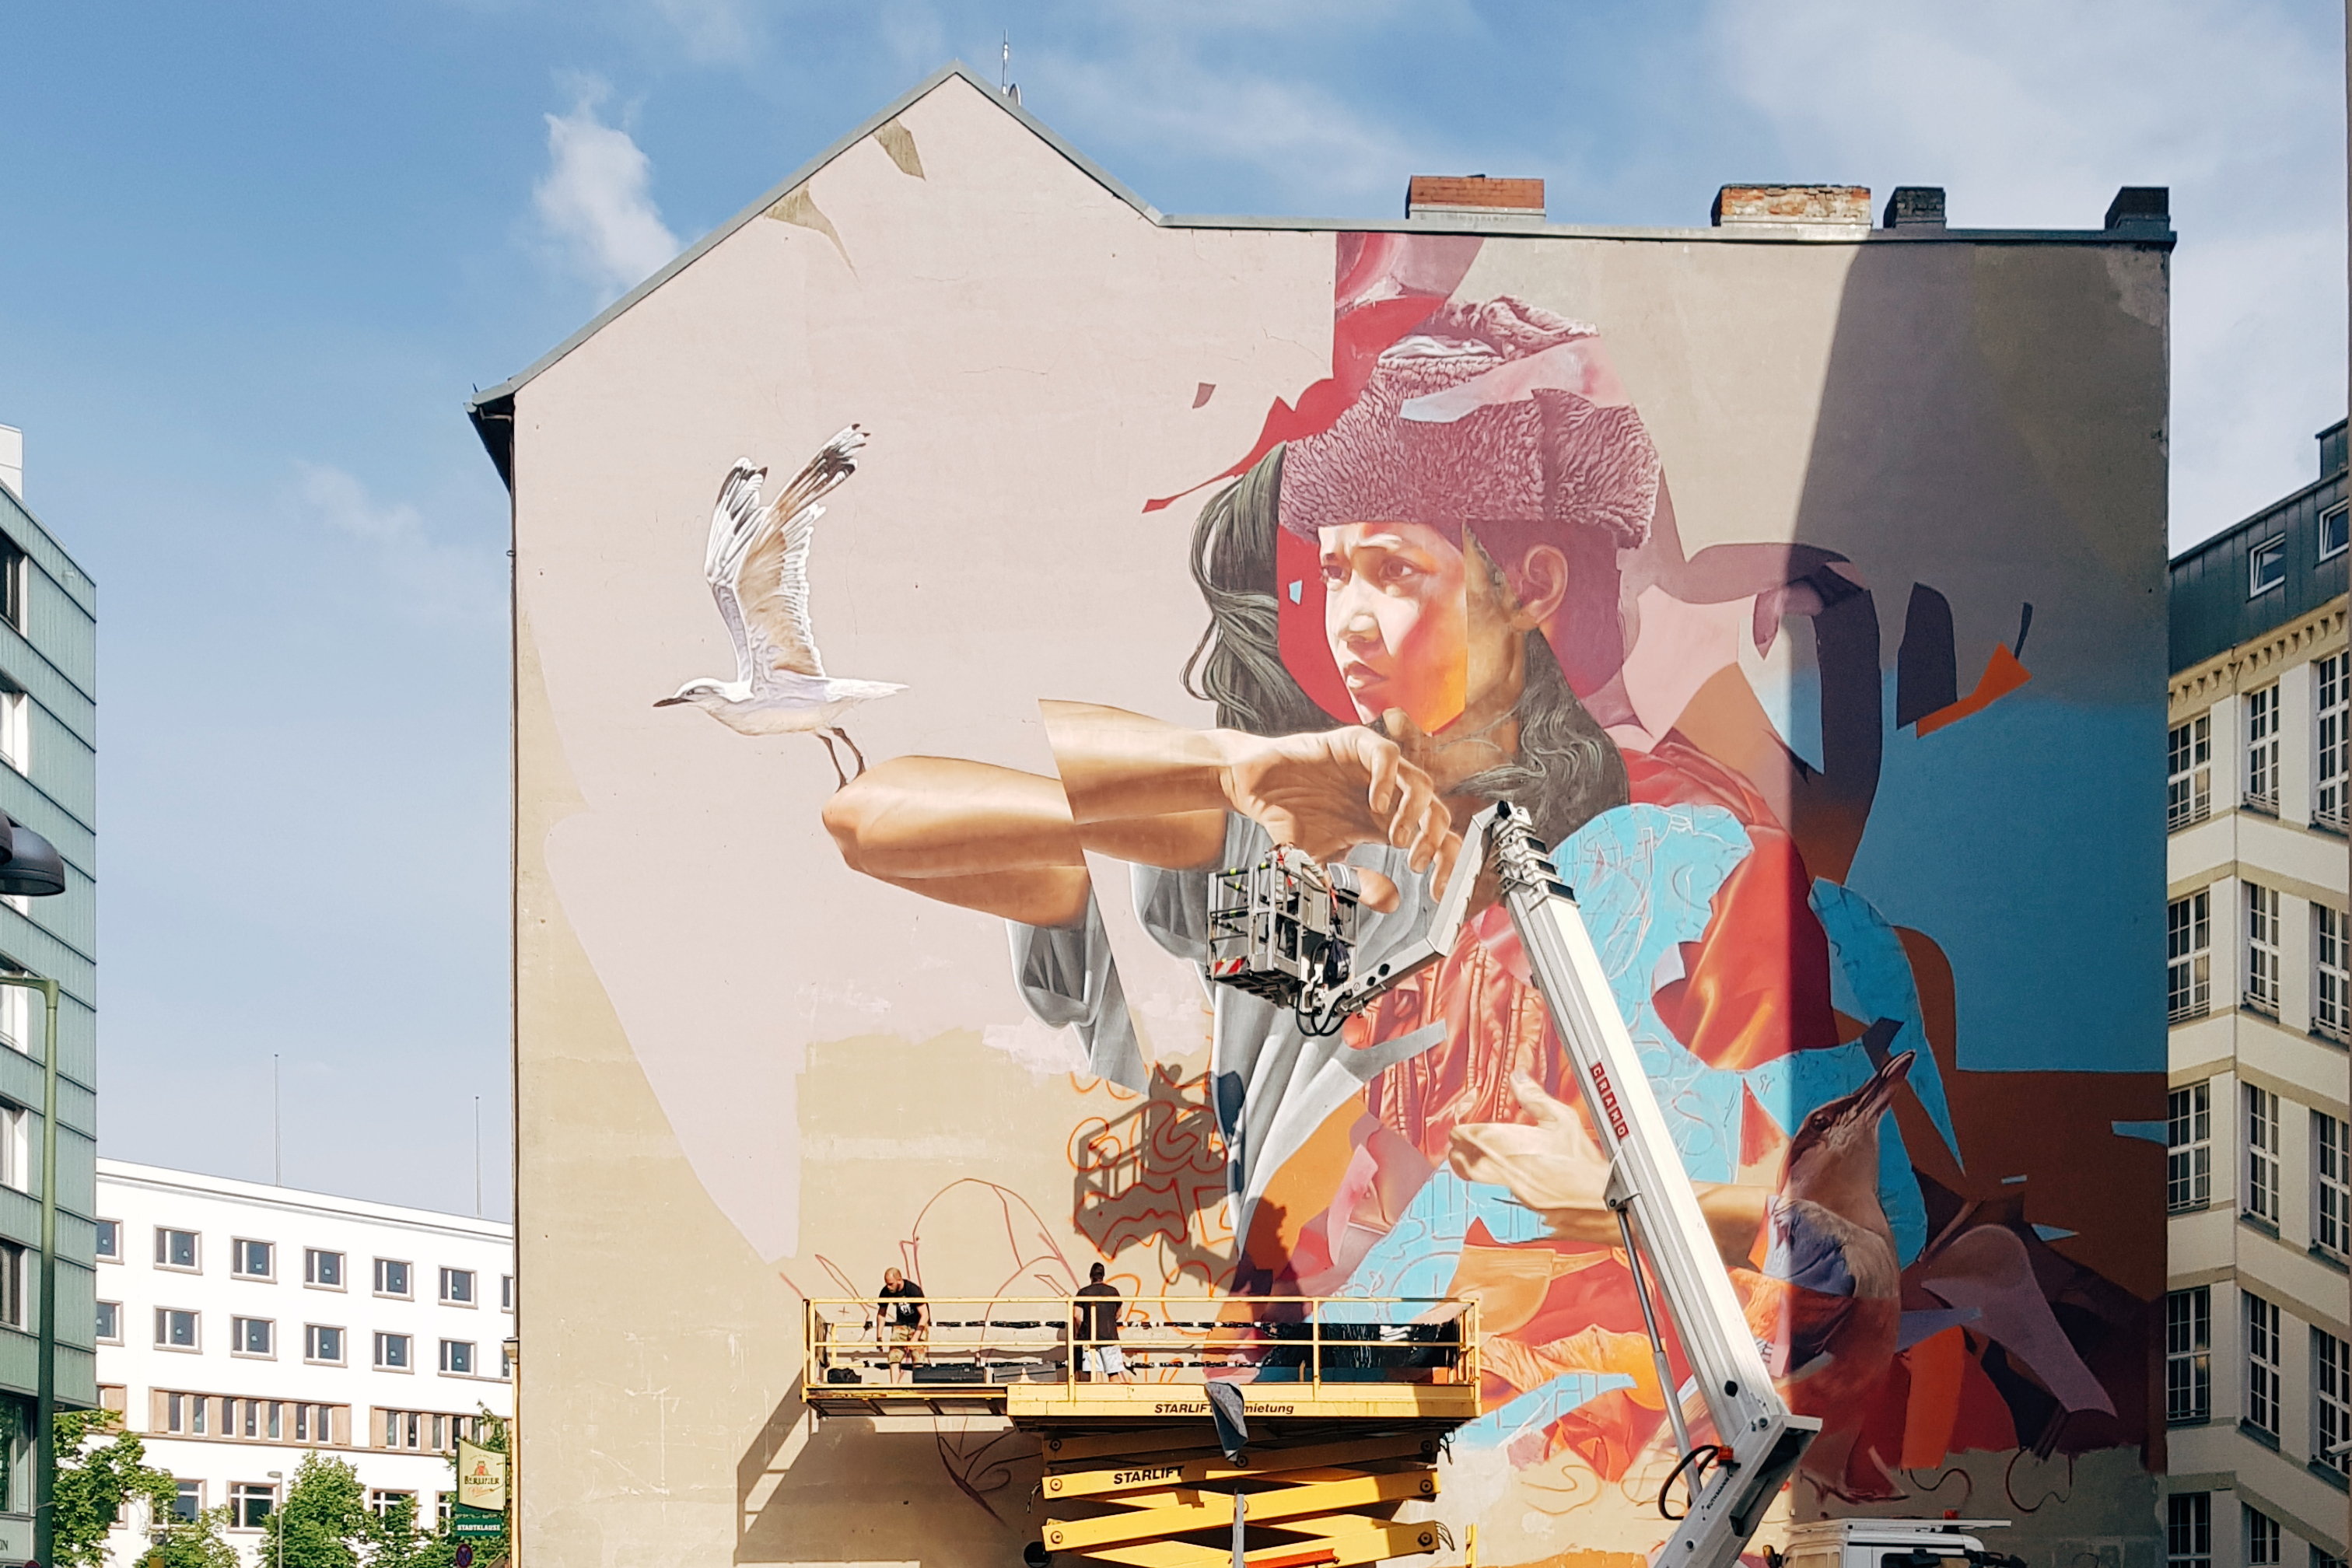 Berlin Got Over 30 Awesome New Street Art Murals